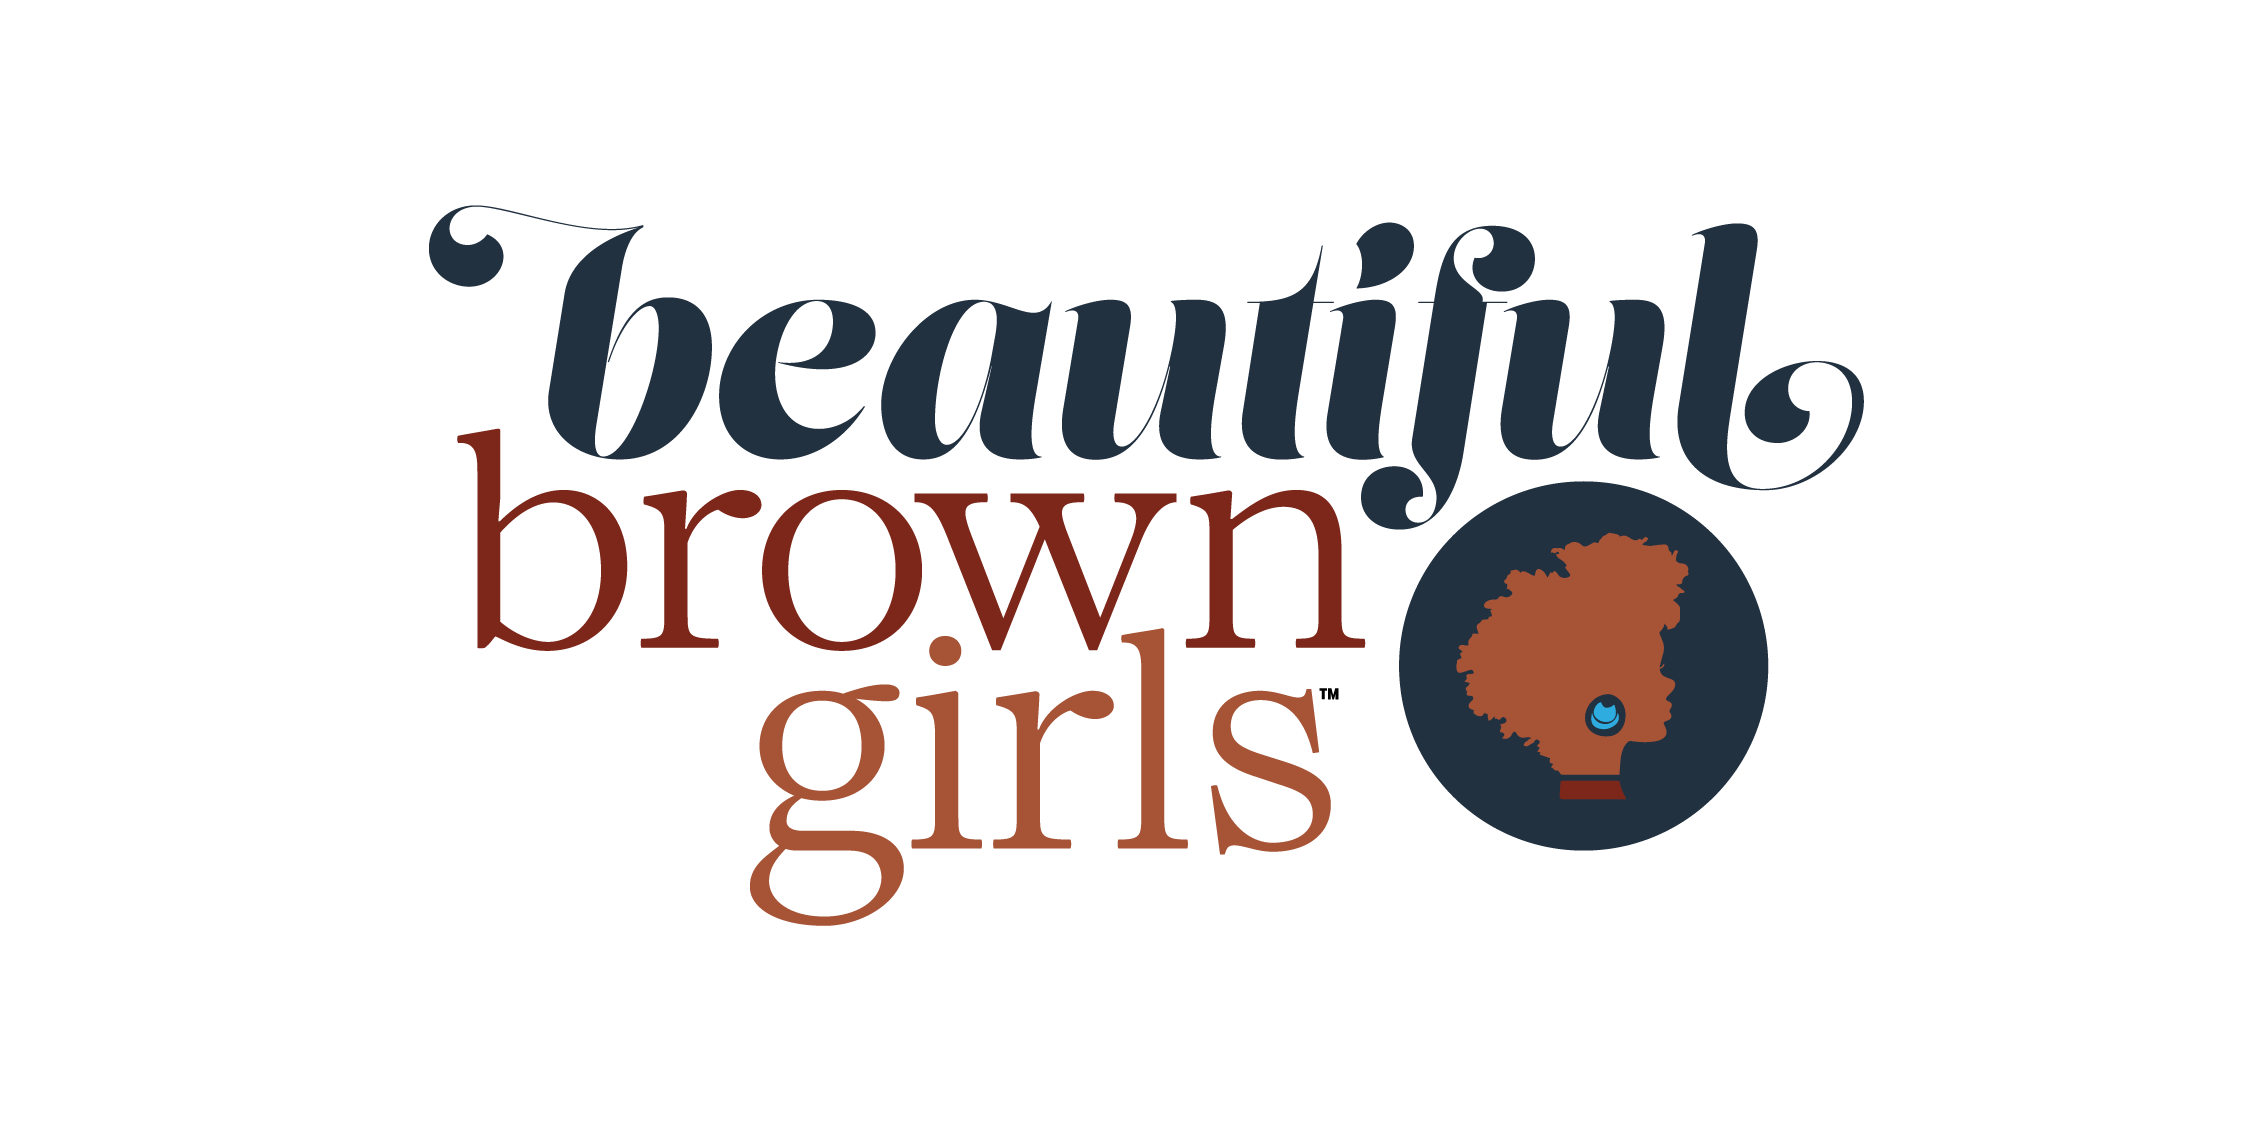 Beautiful Brown Girls